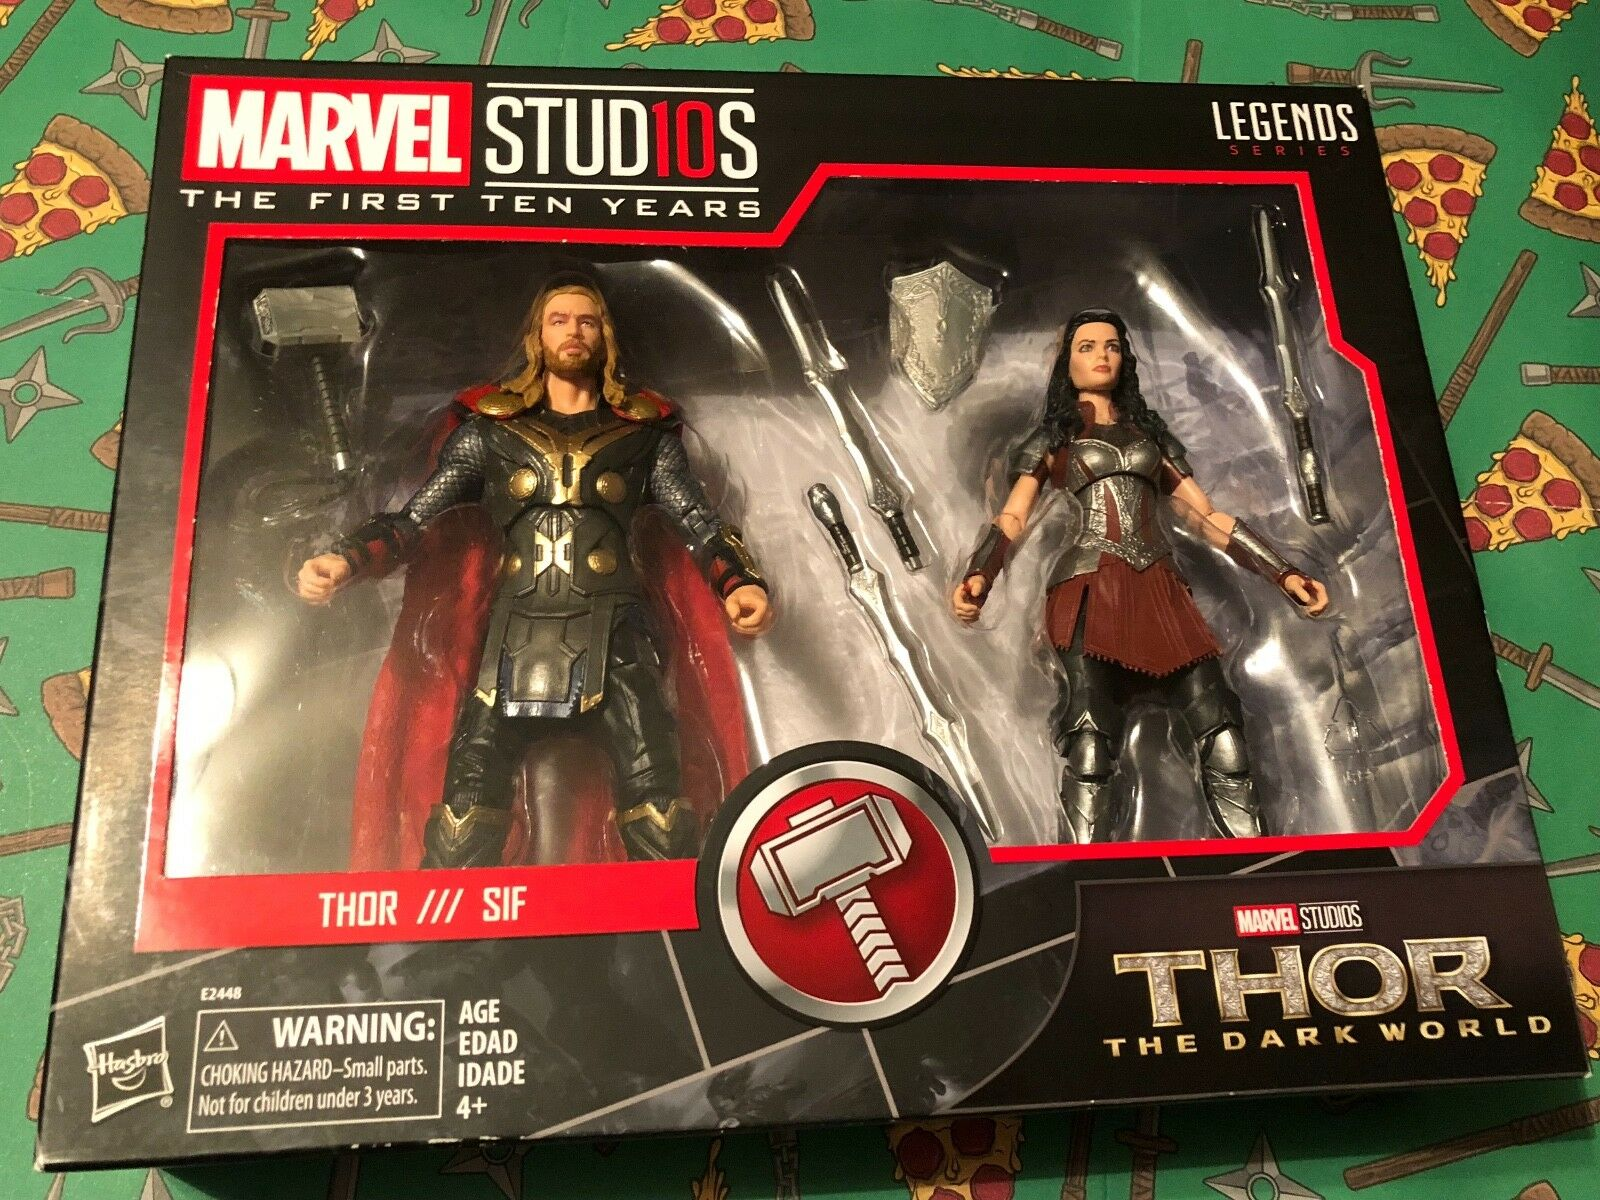 Hasbro Marvel Studios Legends Thor Dark World  Thor & Sif  2 Figure Set NEW